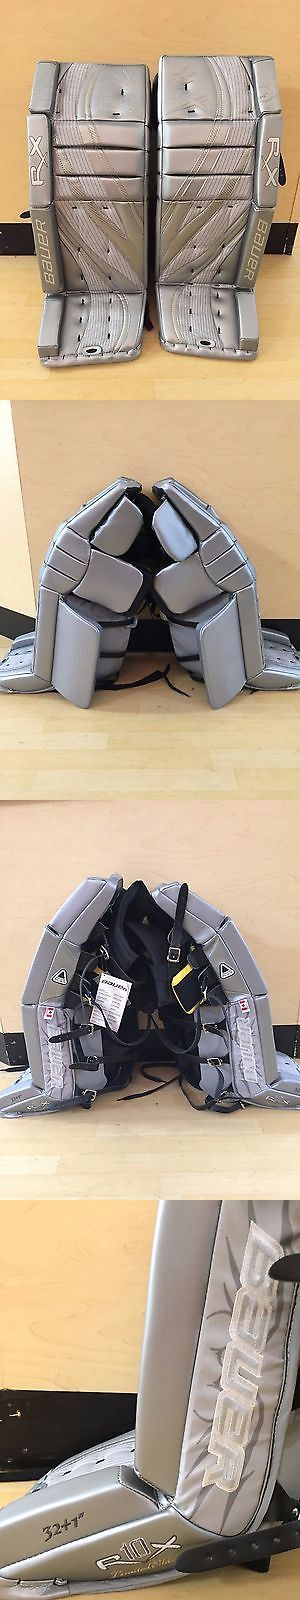 Leg Pads 79764: Bauer Reflex Rx10 Goalie Pads (Limited Edition Silver Black, 32+1 ) -> BUY IT NOW ONLY: $500 on eBay!